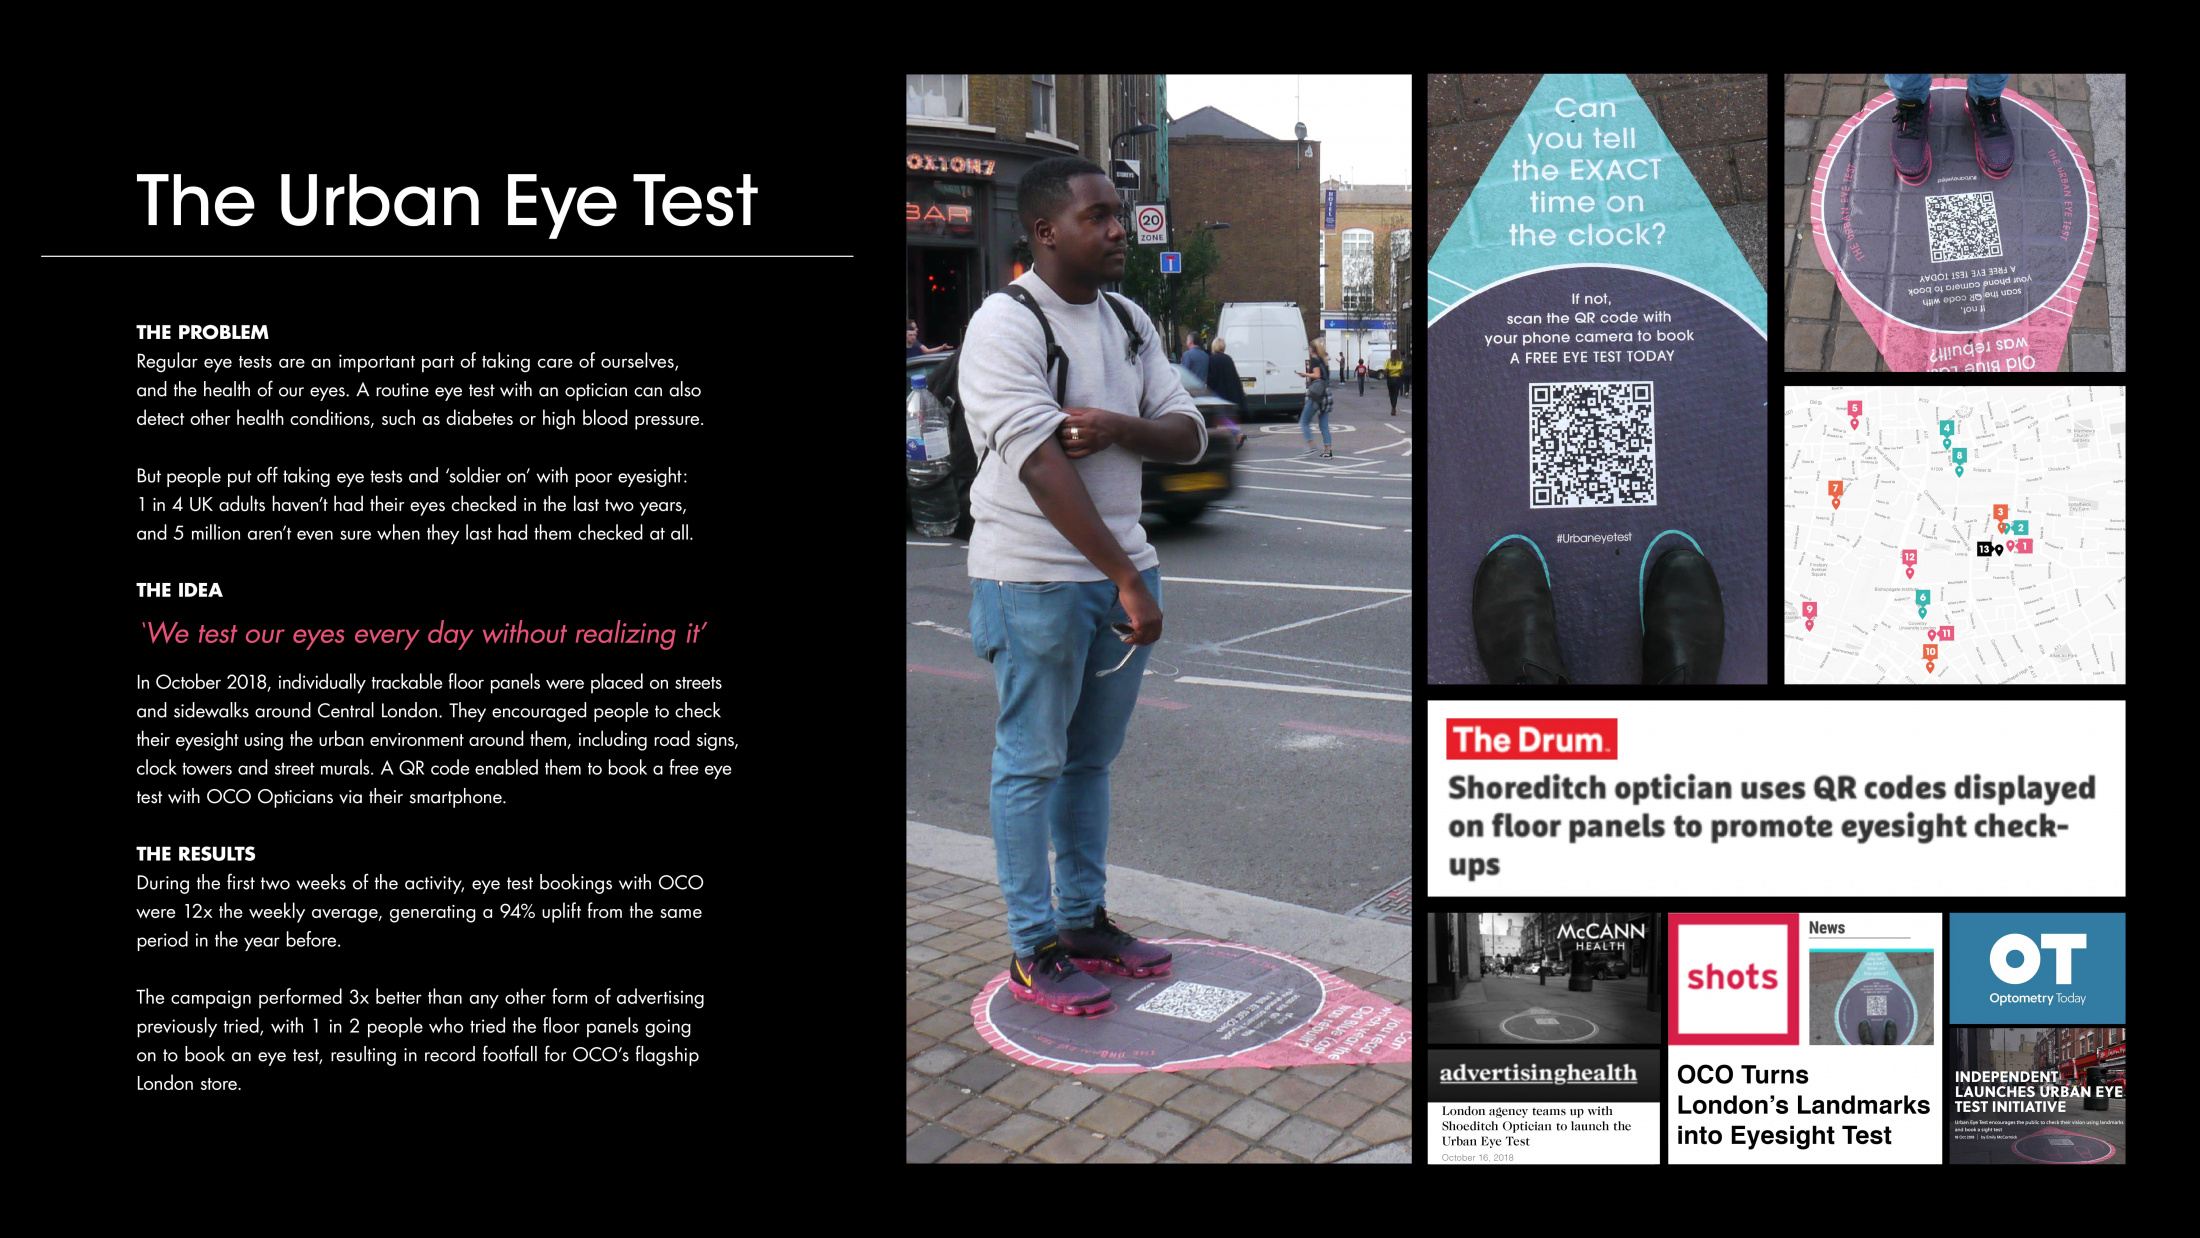 Thumbnail for The Urban Eye Test